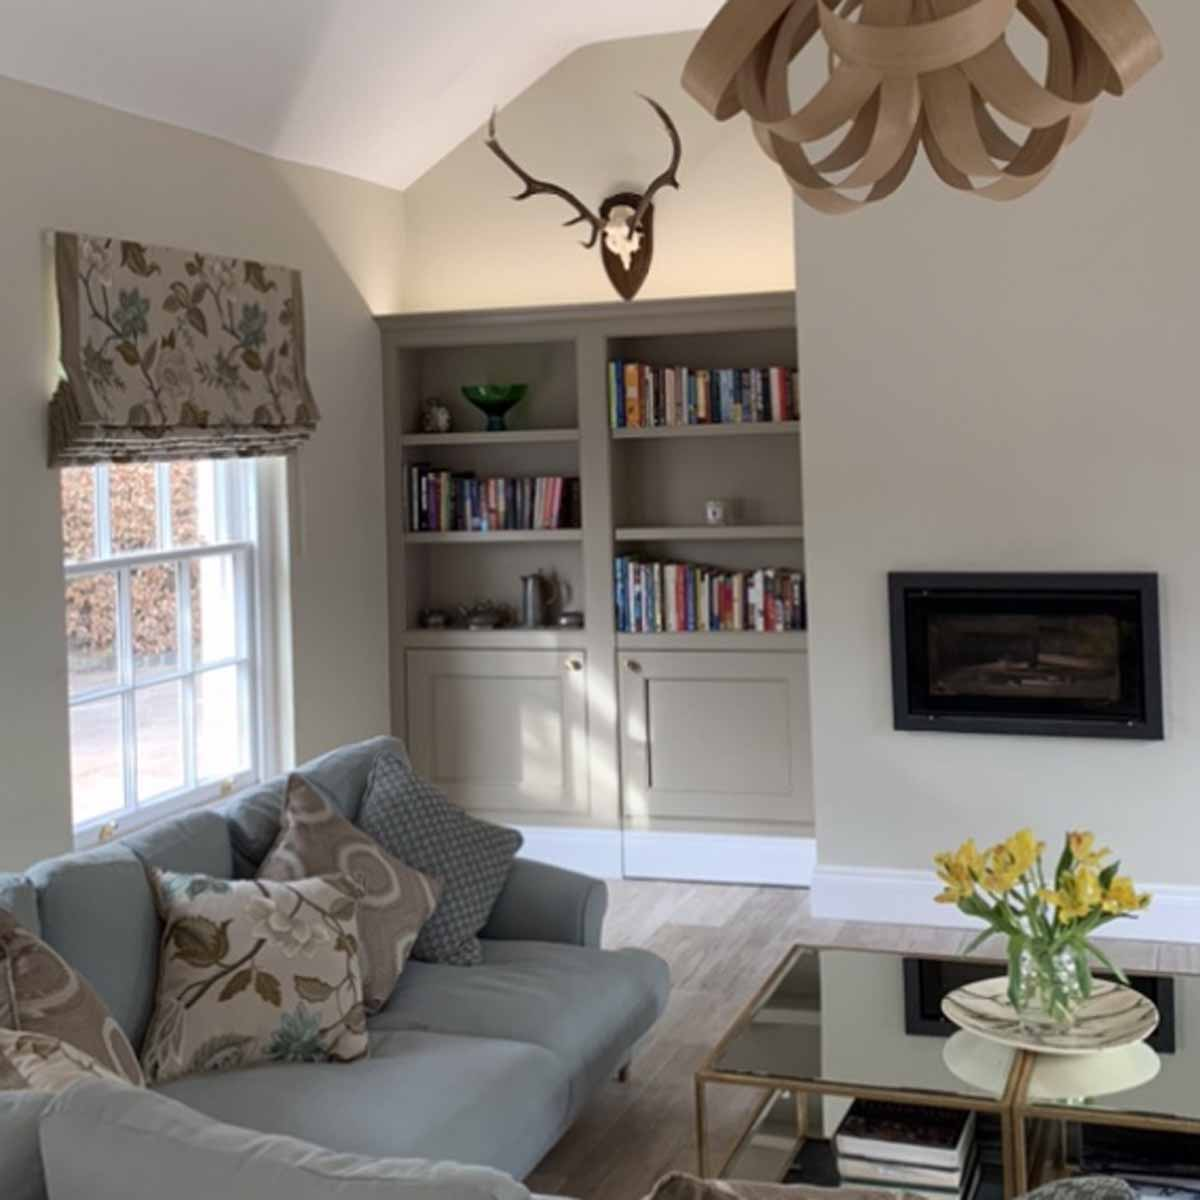 Dining room space design, Shropshire